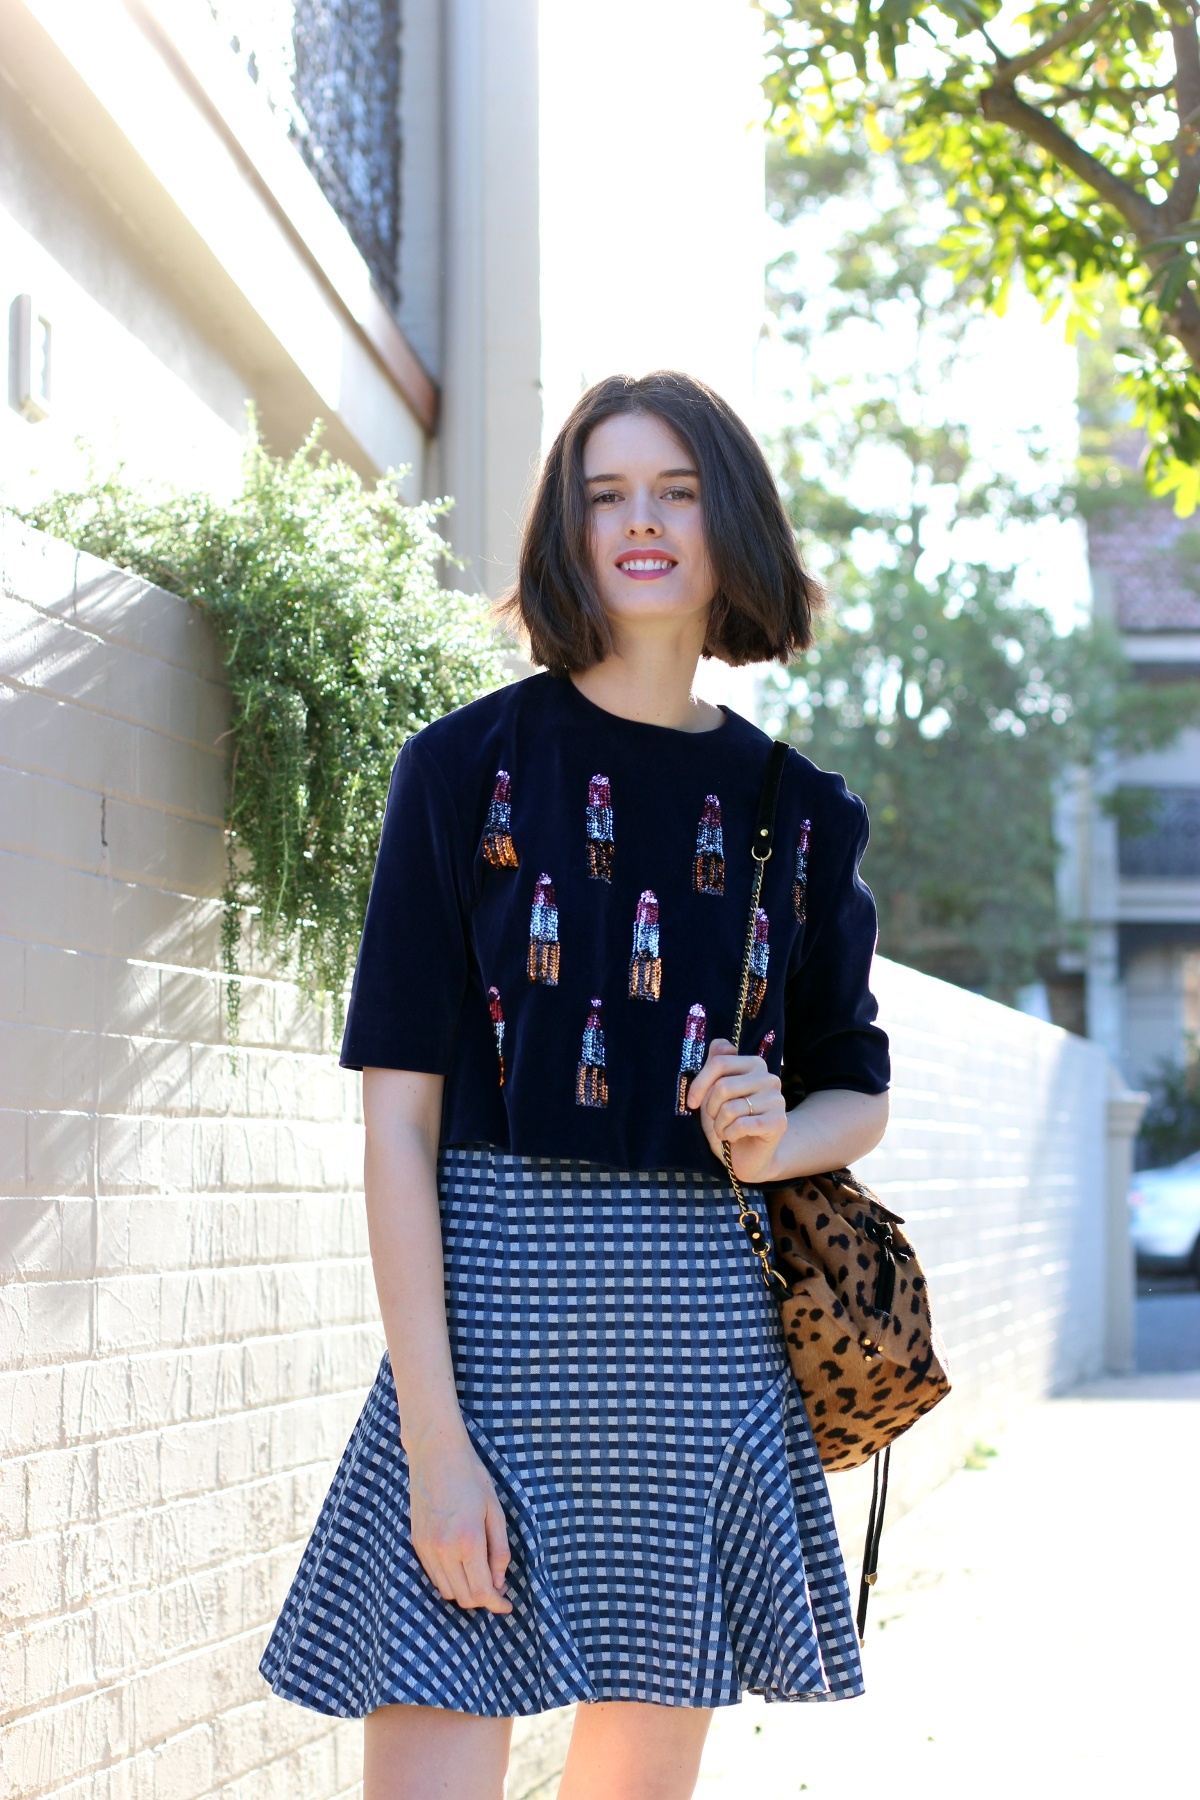 BYCHILL AUSTRALIAN FASHION BLOGS Chloe Hill Wearing House of Holland navy velvet top with sequin lipstick detail, Bianca Spender blue gingham check skirt and Jerome Dreyfuss leopard print ponyhair backpack